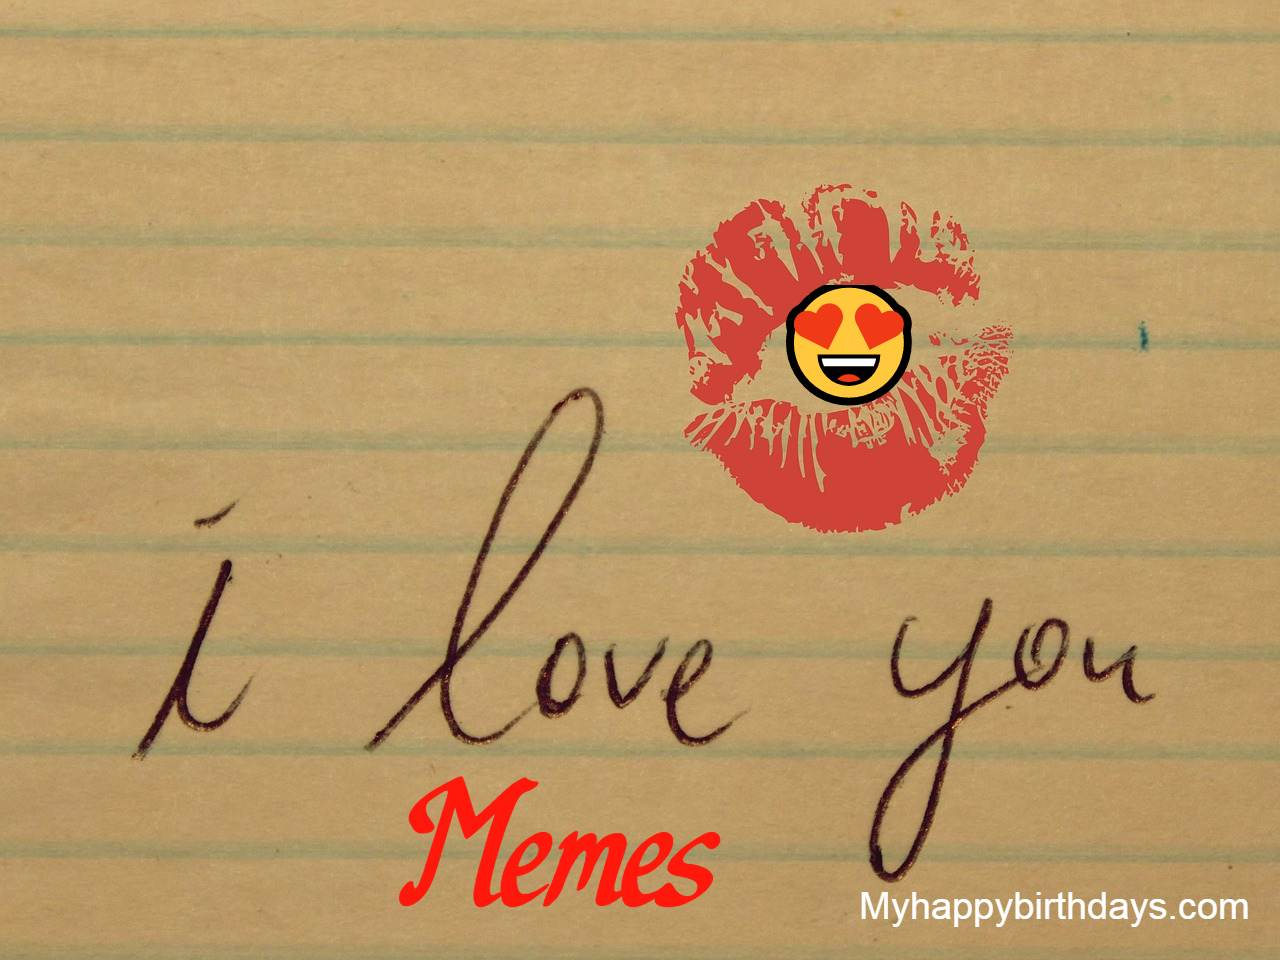 Best Funny I Love You Memes For Him, Her